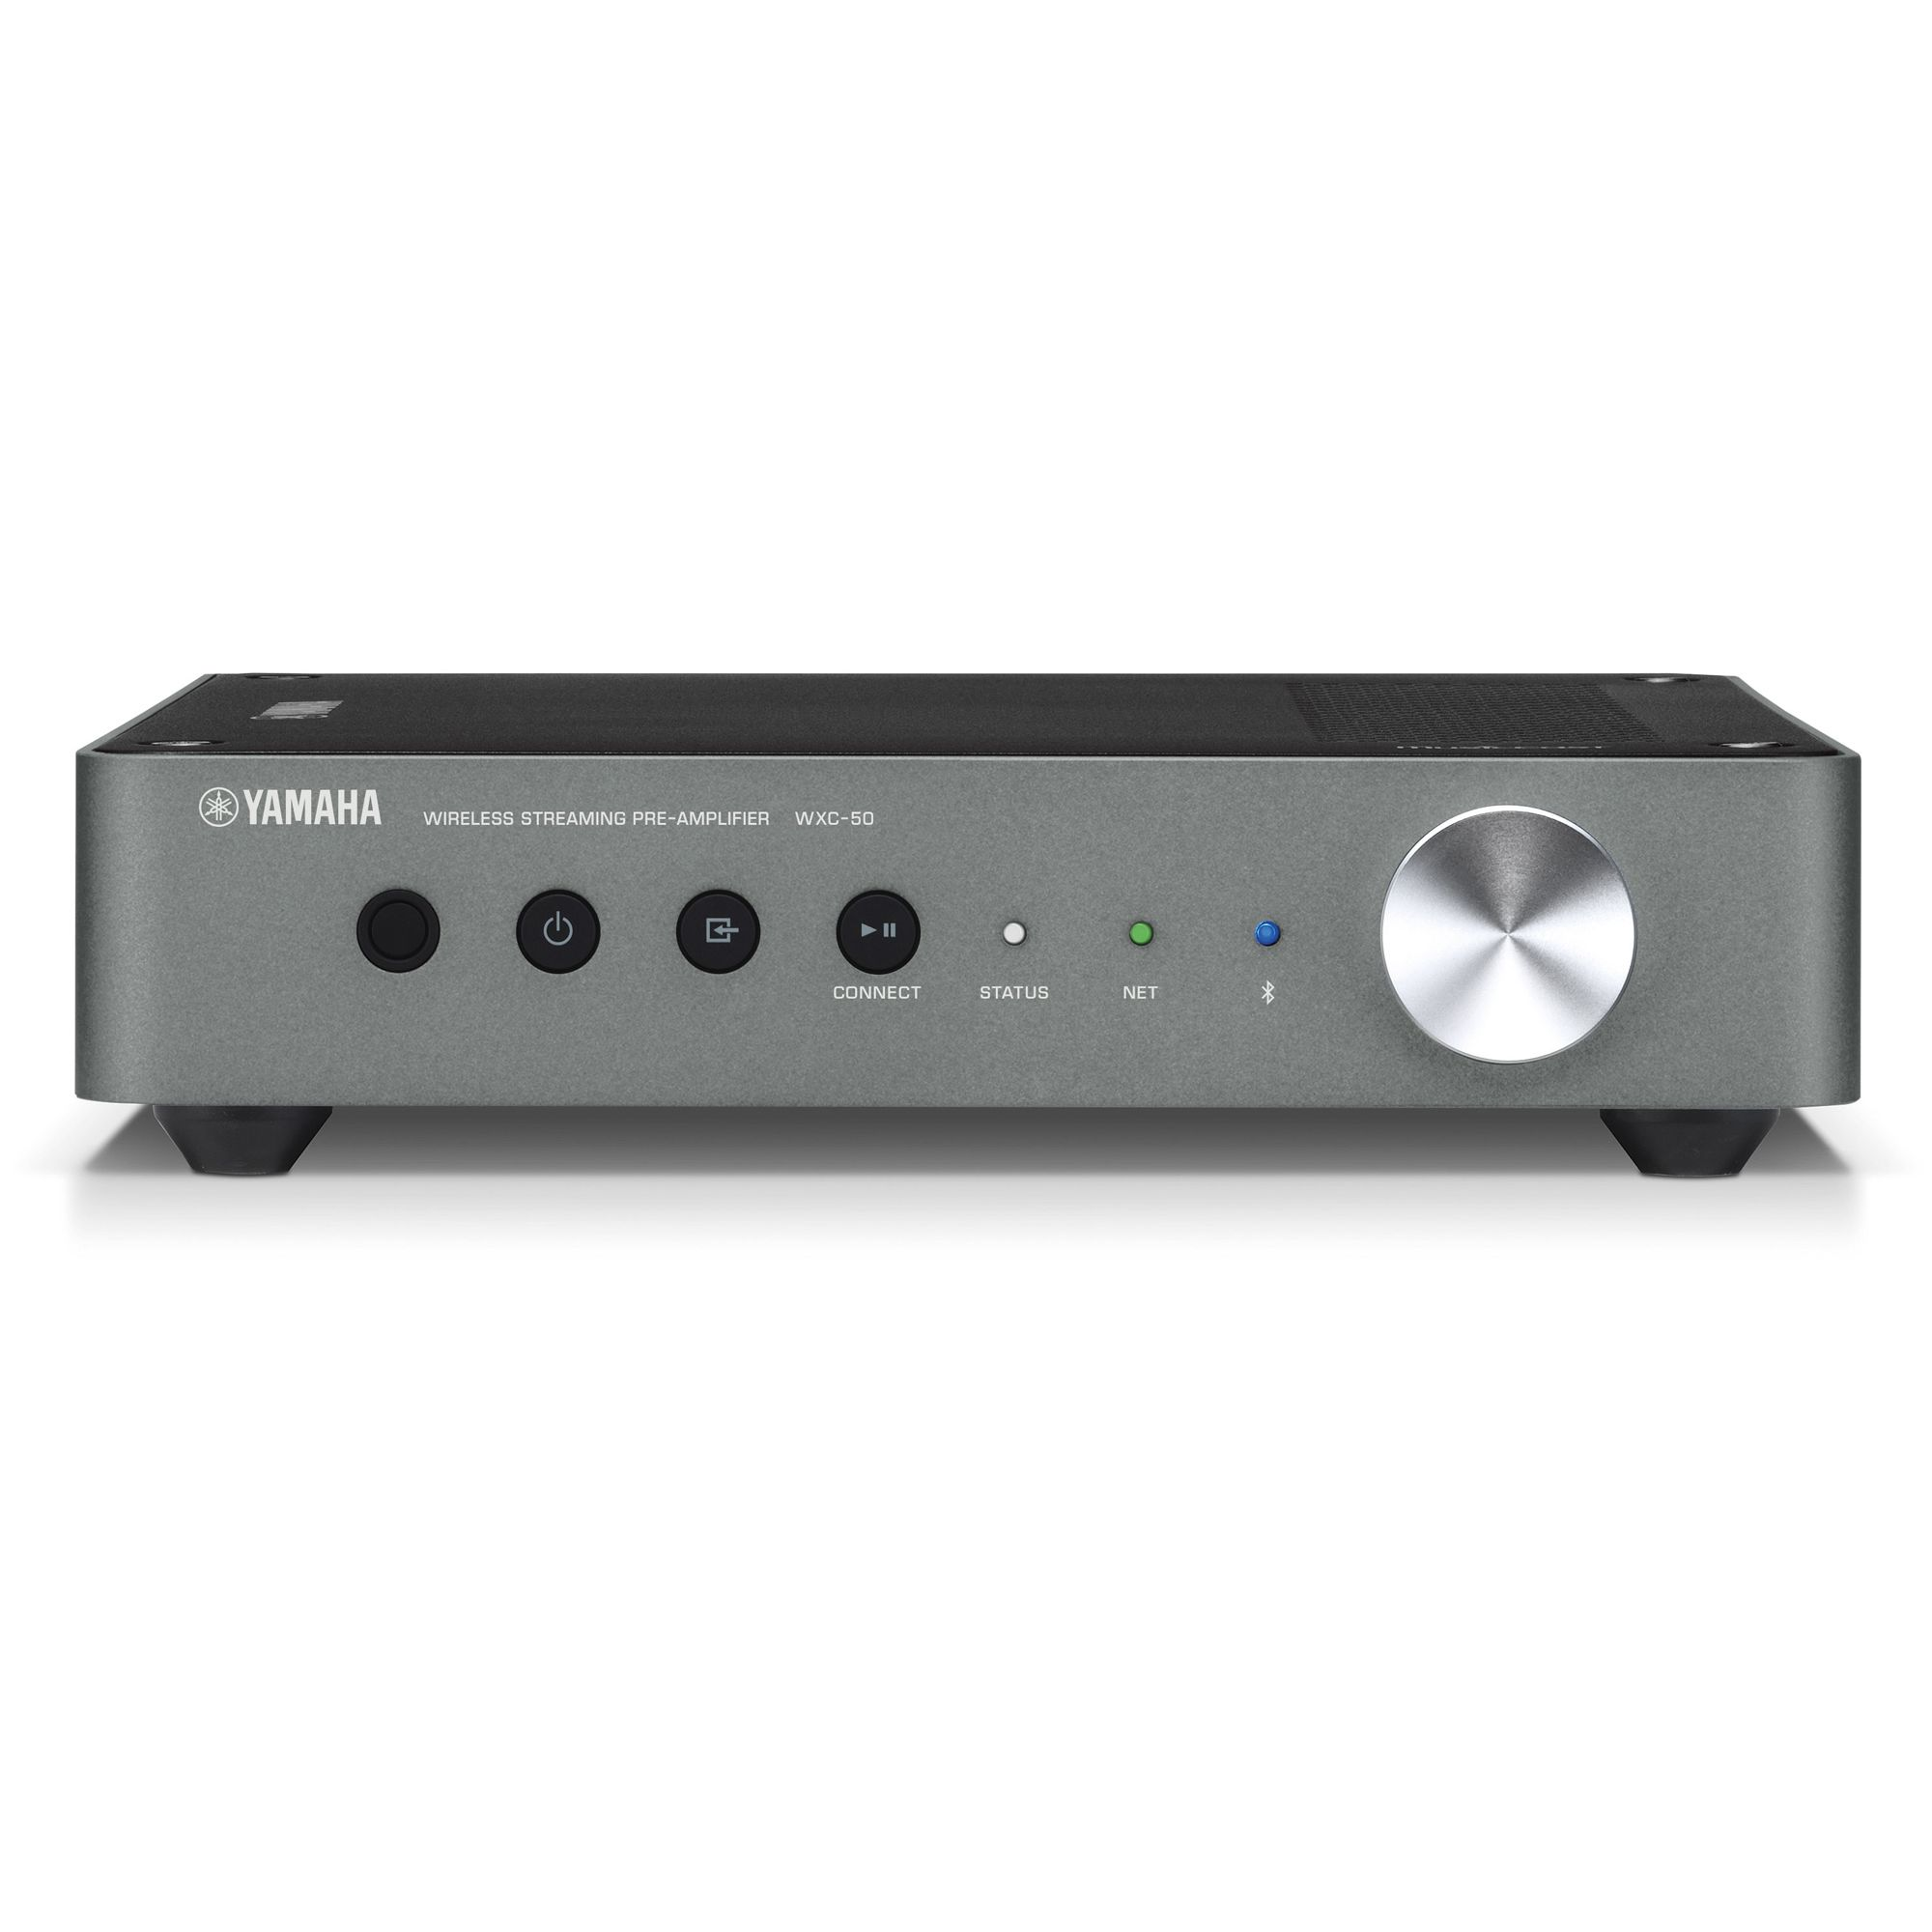 Wxc 50 Overview Wireless Streaming Amplifiers Audio Visual Products Yamaha United States